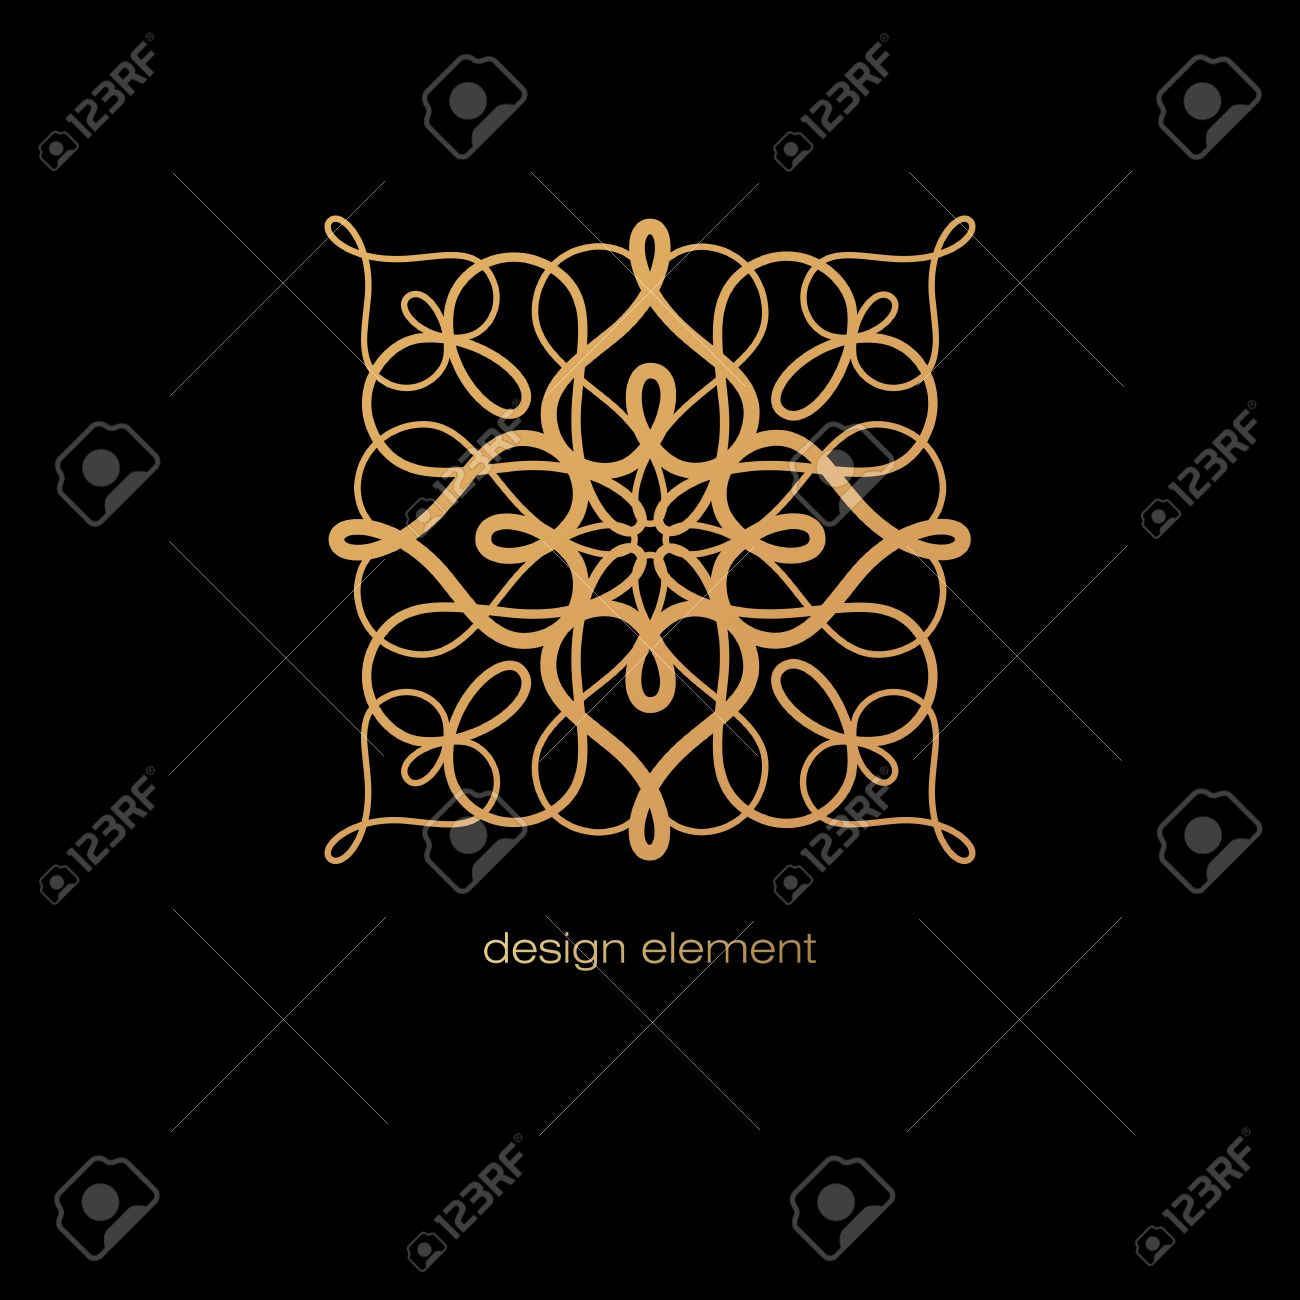 How To Make A Decorative Book Cover ~ Vector abstract decorative rosette to create different designs